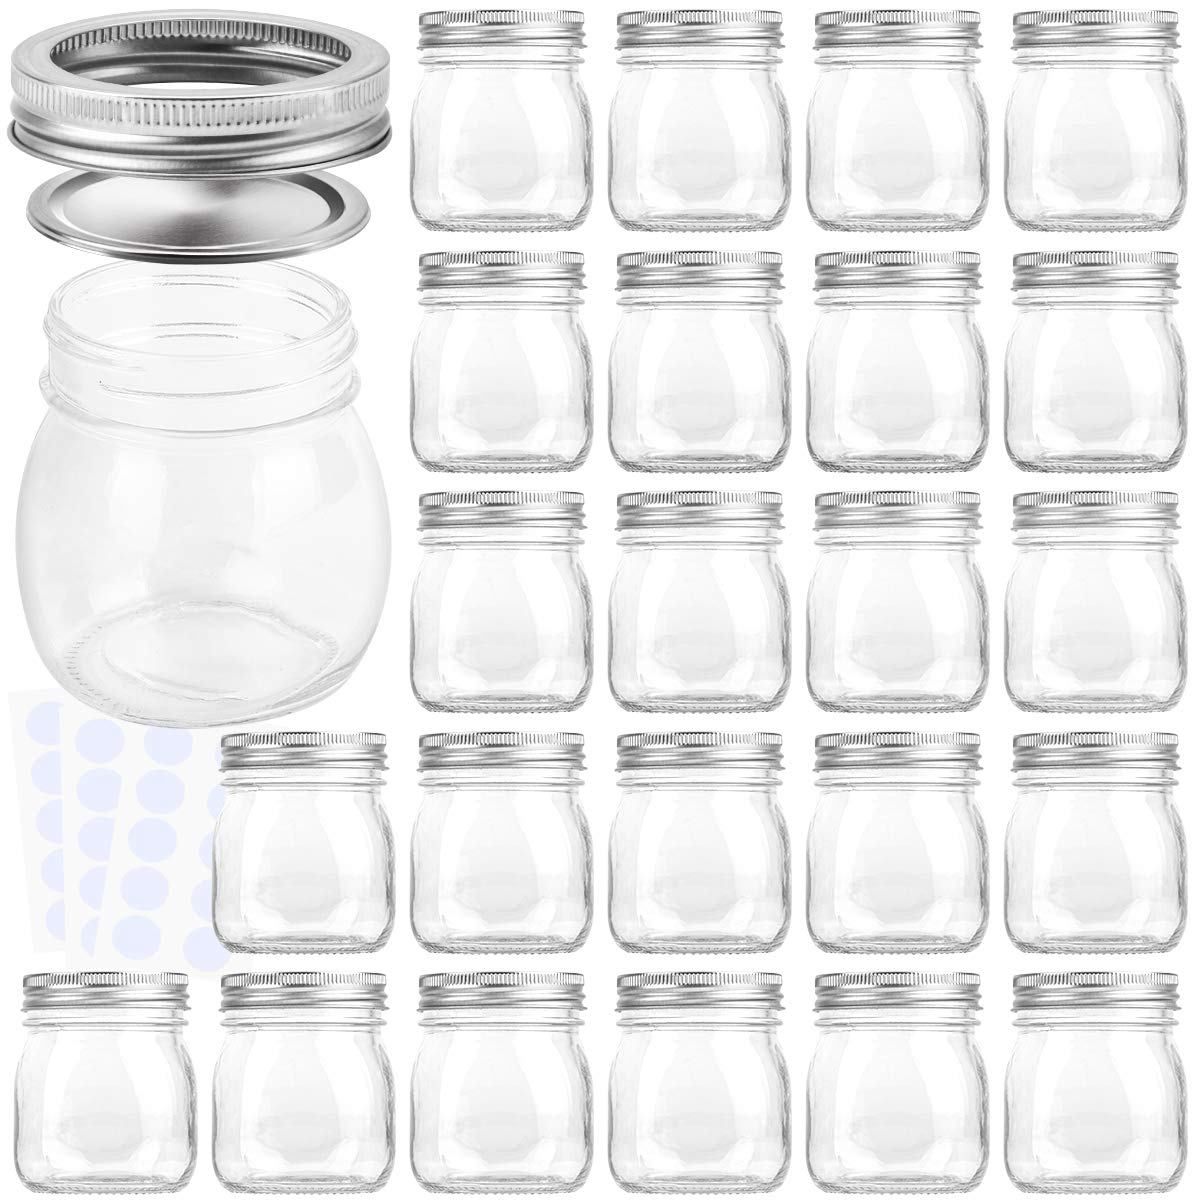 KAMOTA Mason Jars 10OZ With Regular Lids and Bands, Ideal for Jam, Honey, Wedding Favors, Shower Favors, Baby Foods, DIY Magnetic Spice Jars, 24 PACK, 30 Whiteboard Labels Included